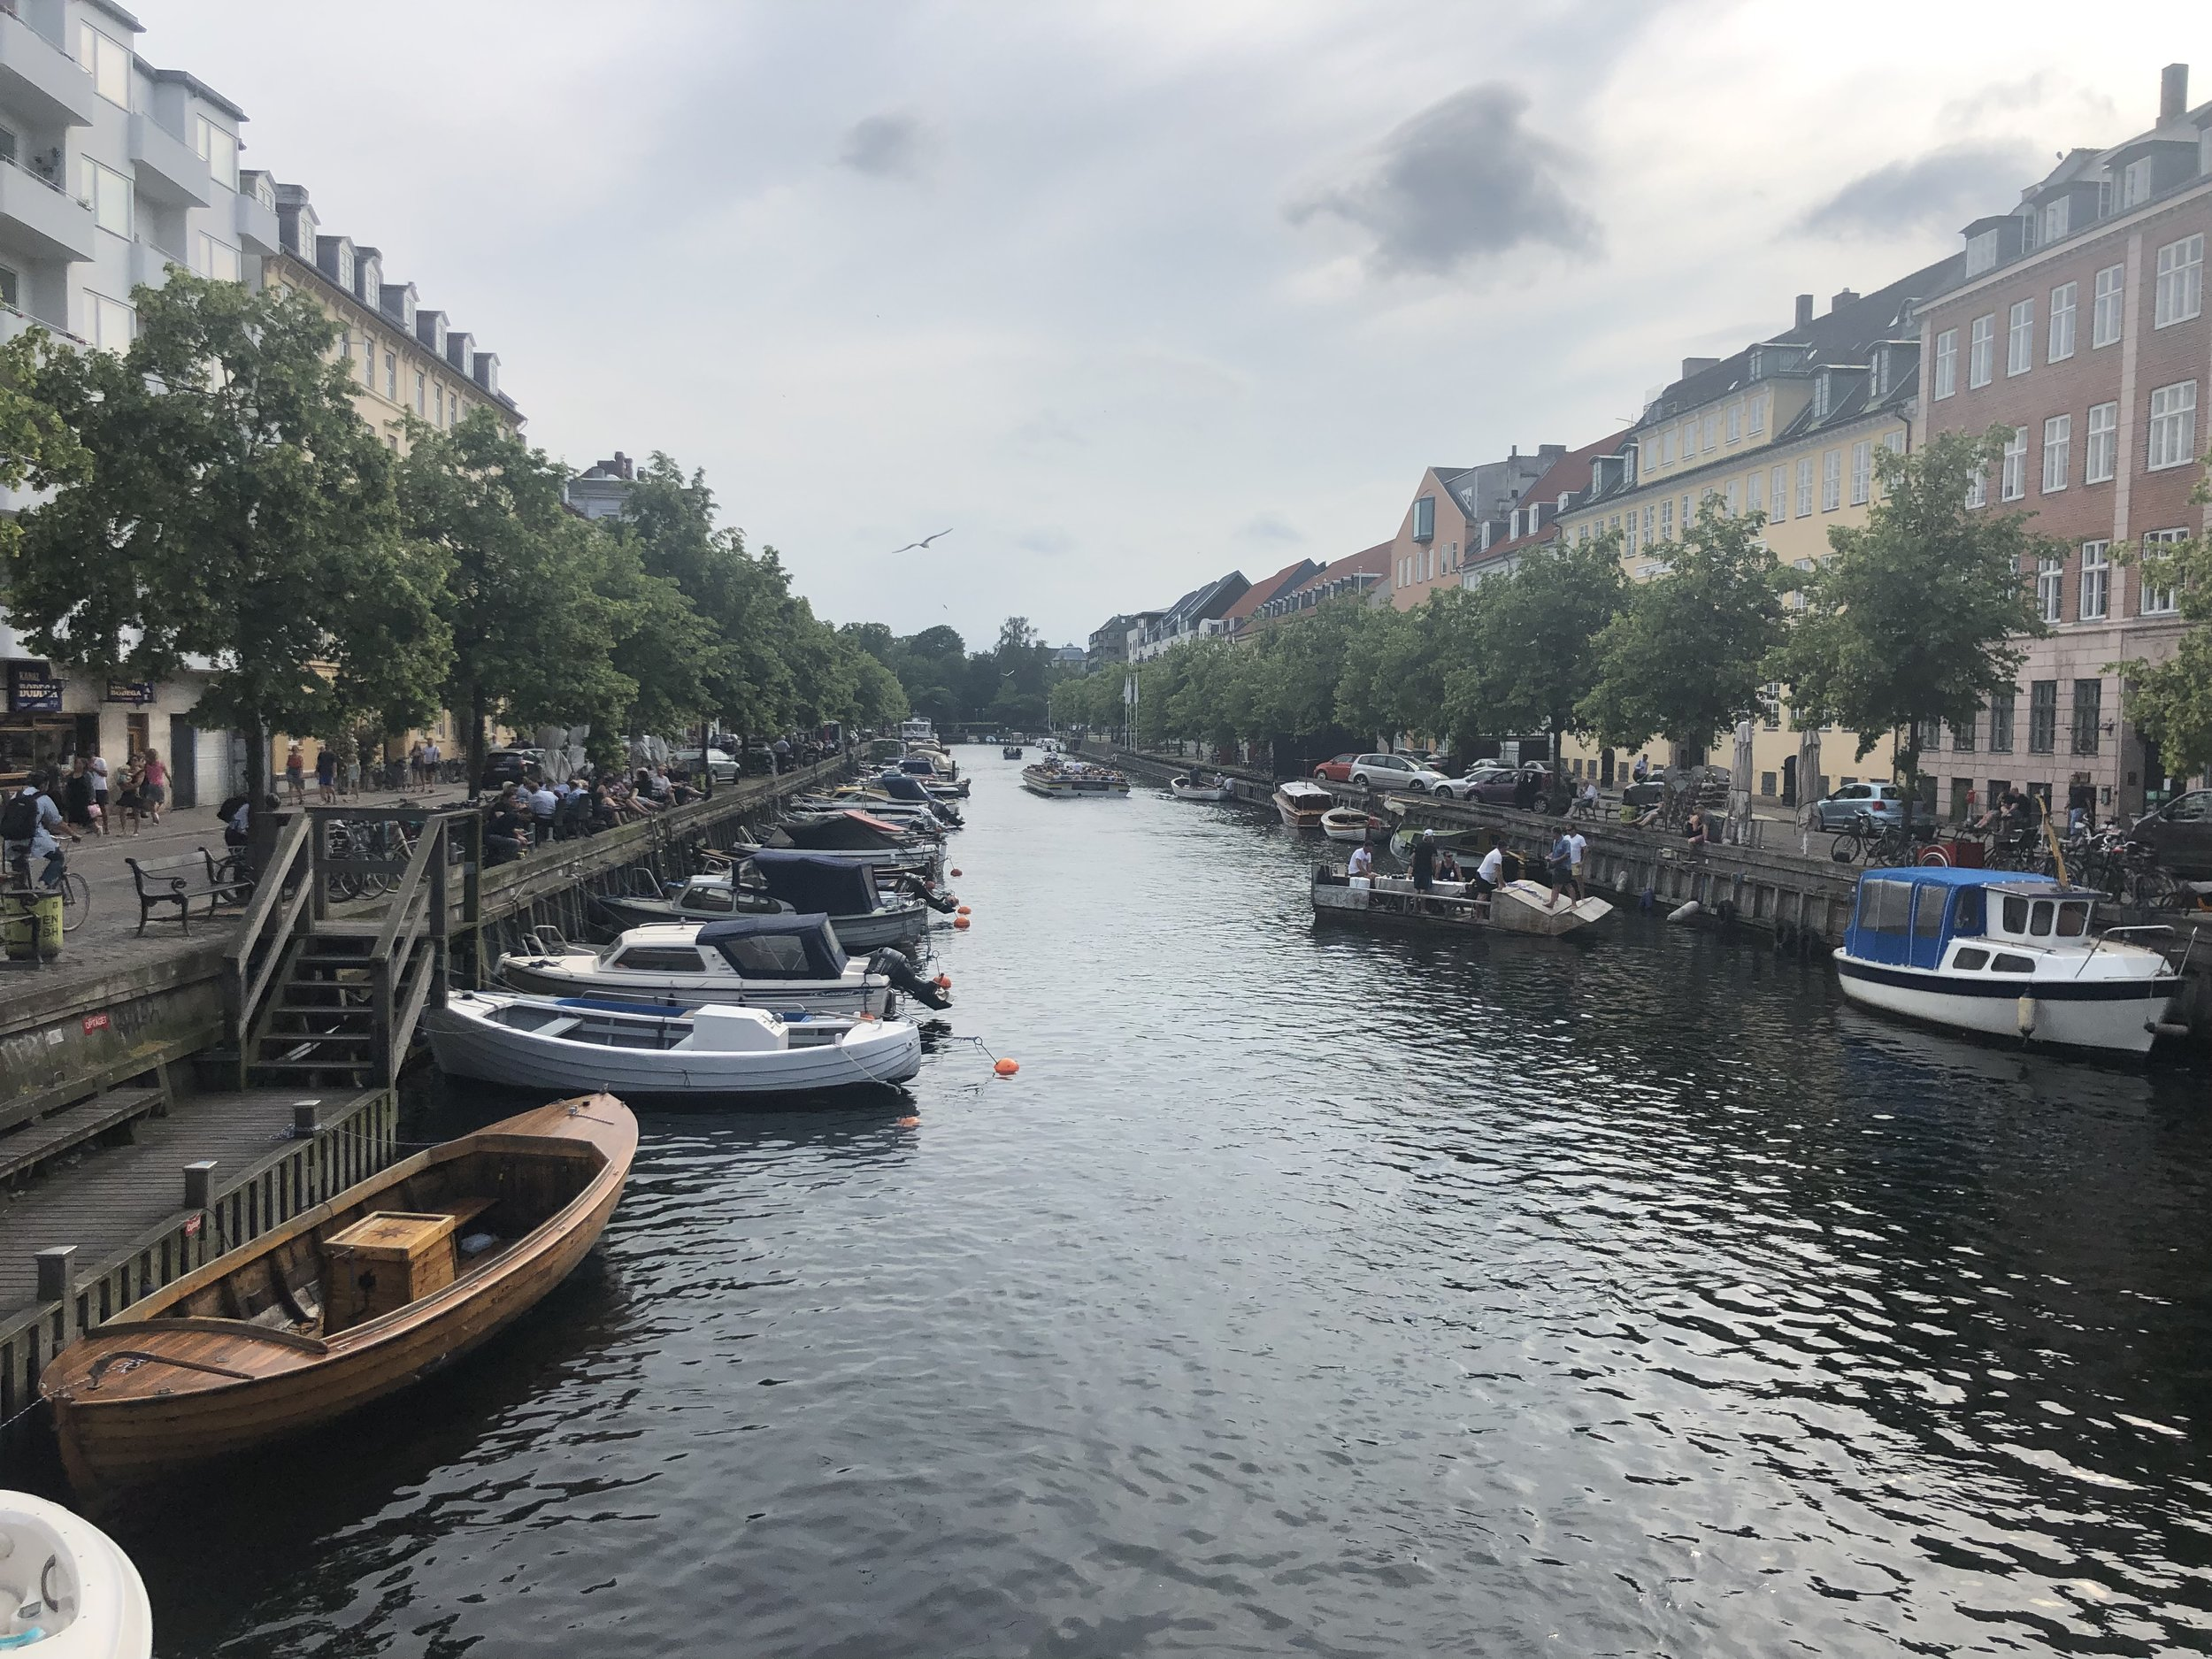 One of the many canals in Copenhagen. They are mostly used pleasure boating and tours.